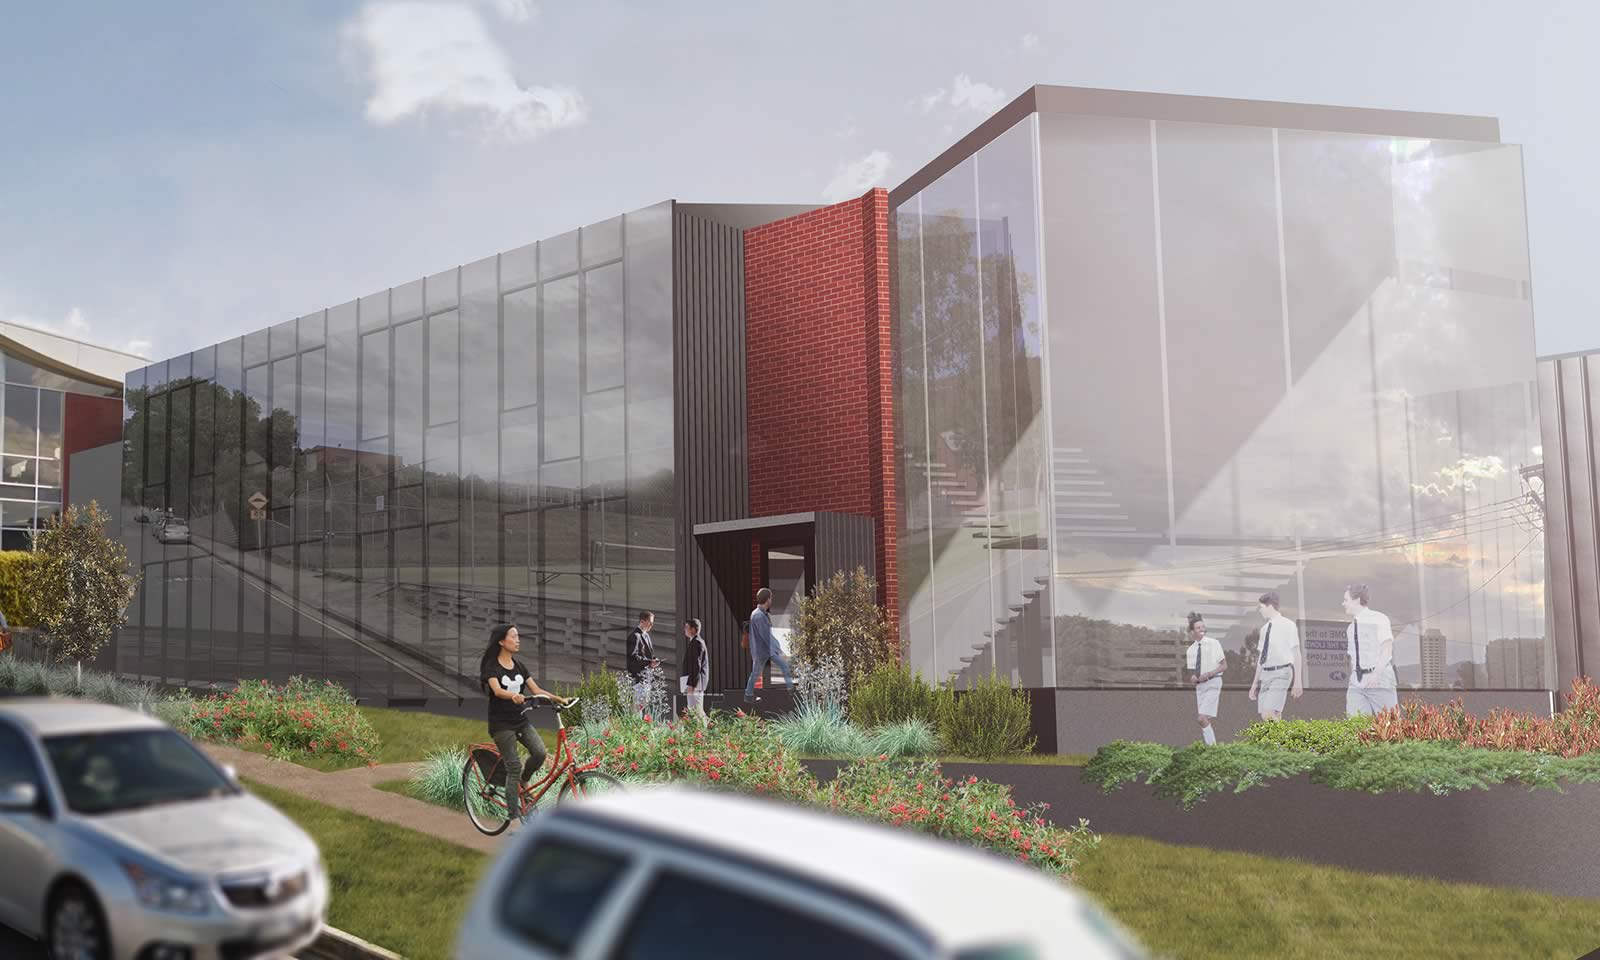 Artist's impression of the Middle School extension